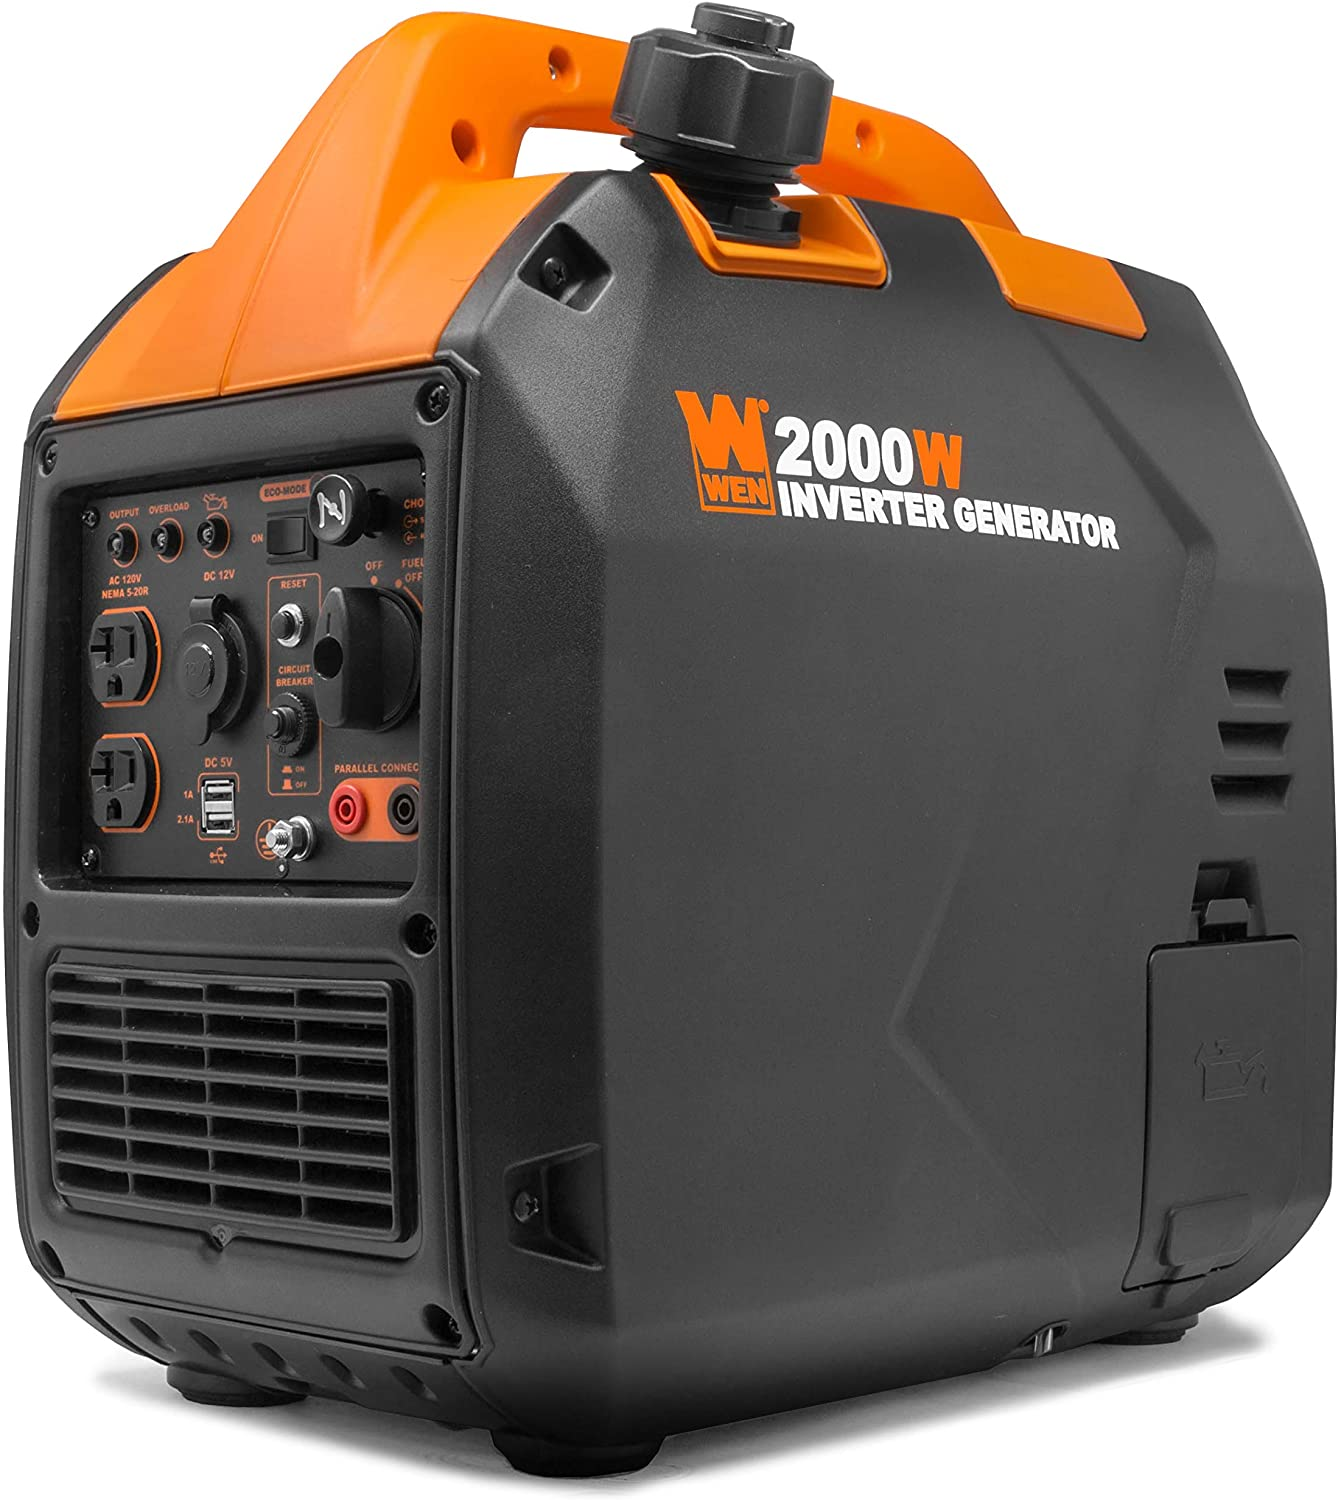 Portable generator - recommended item to always keep packed in a motorhome